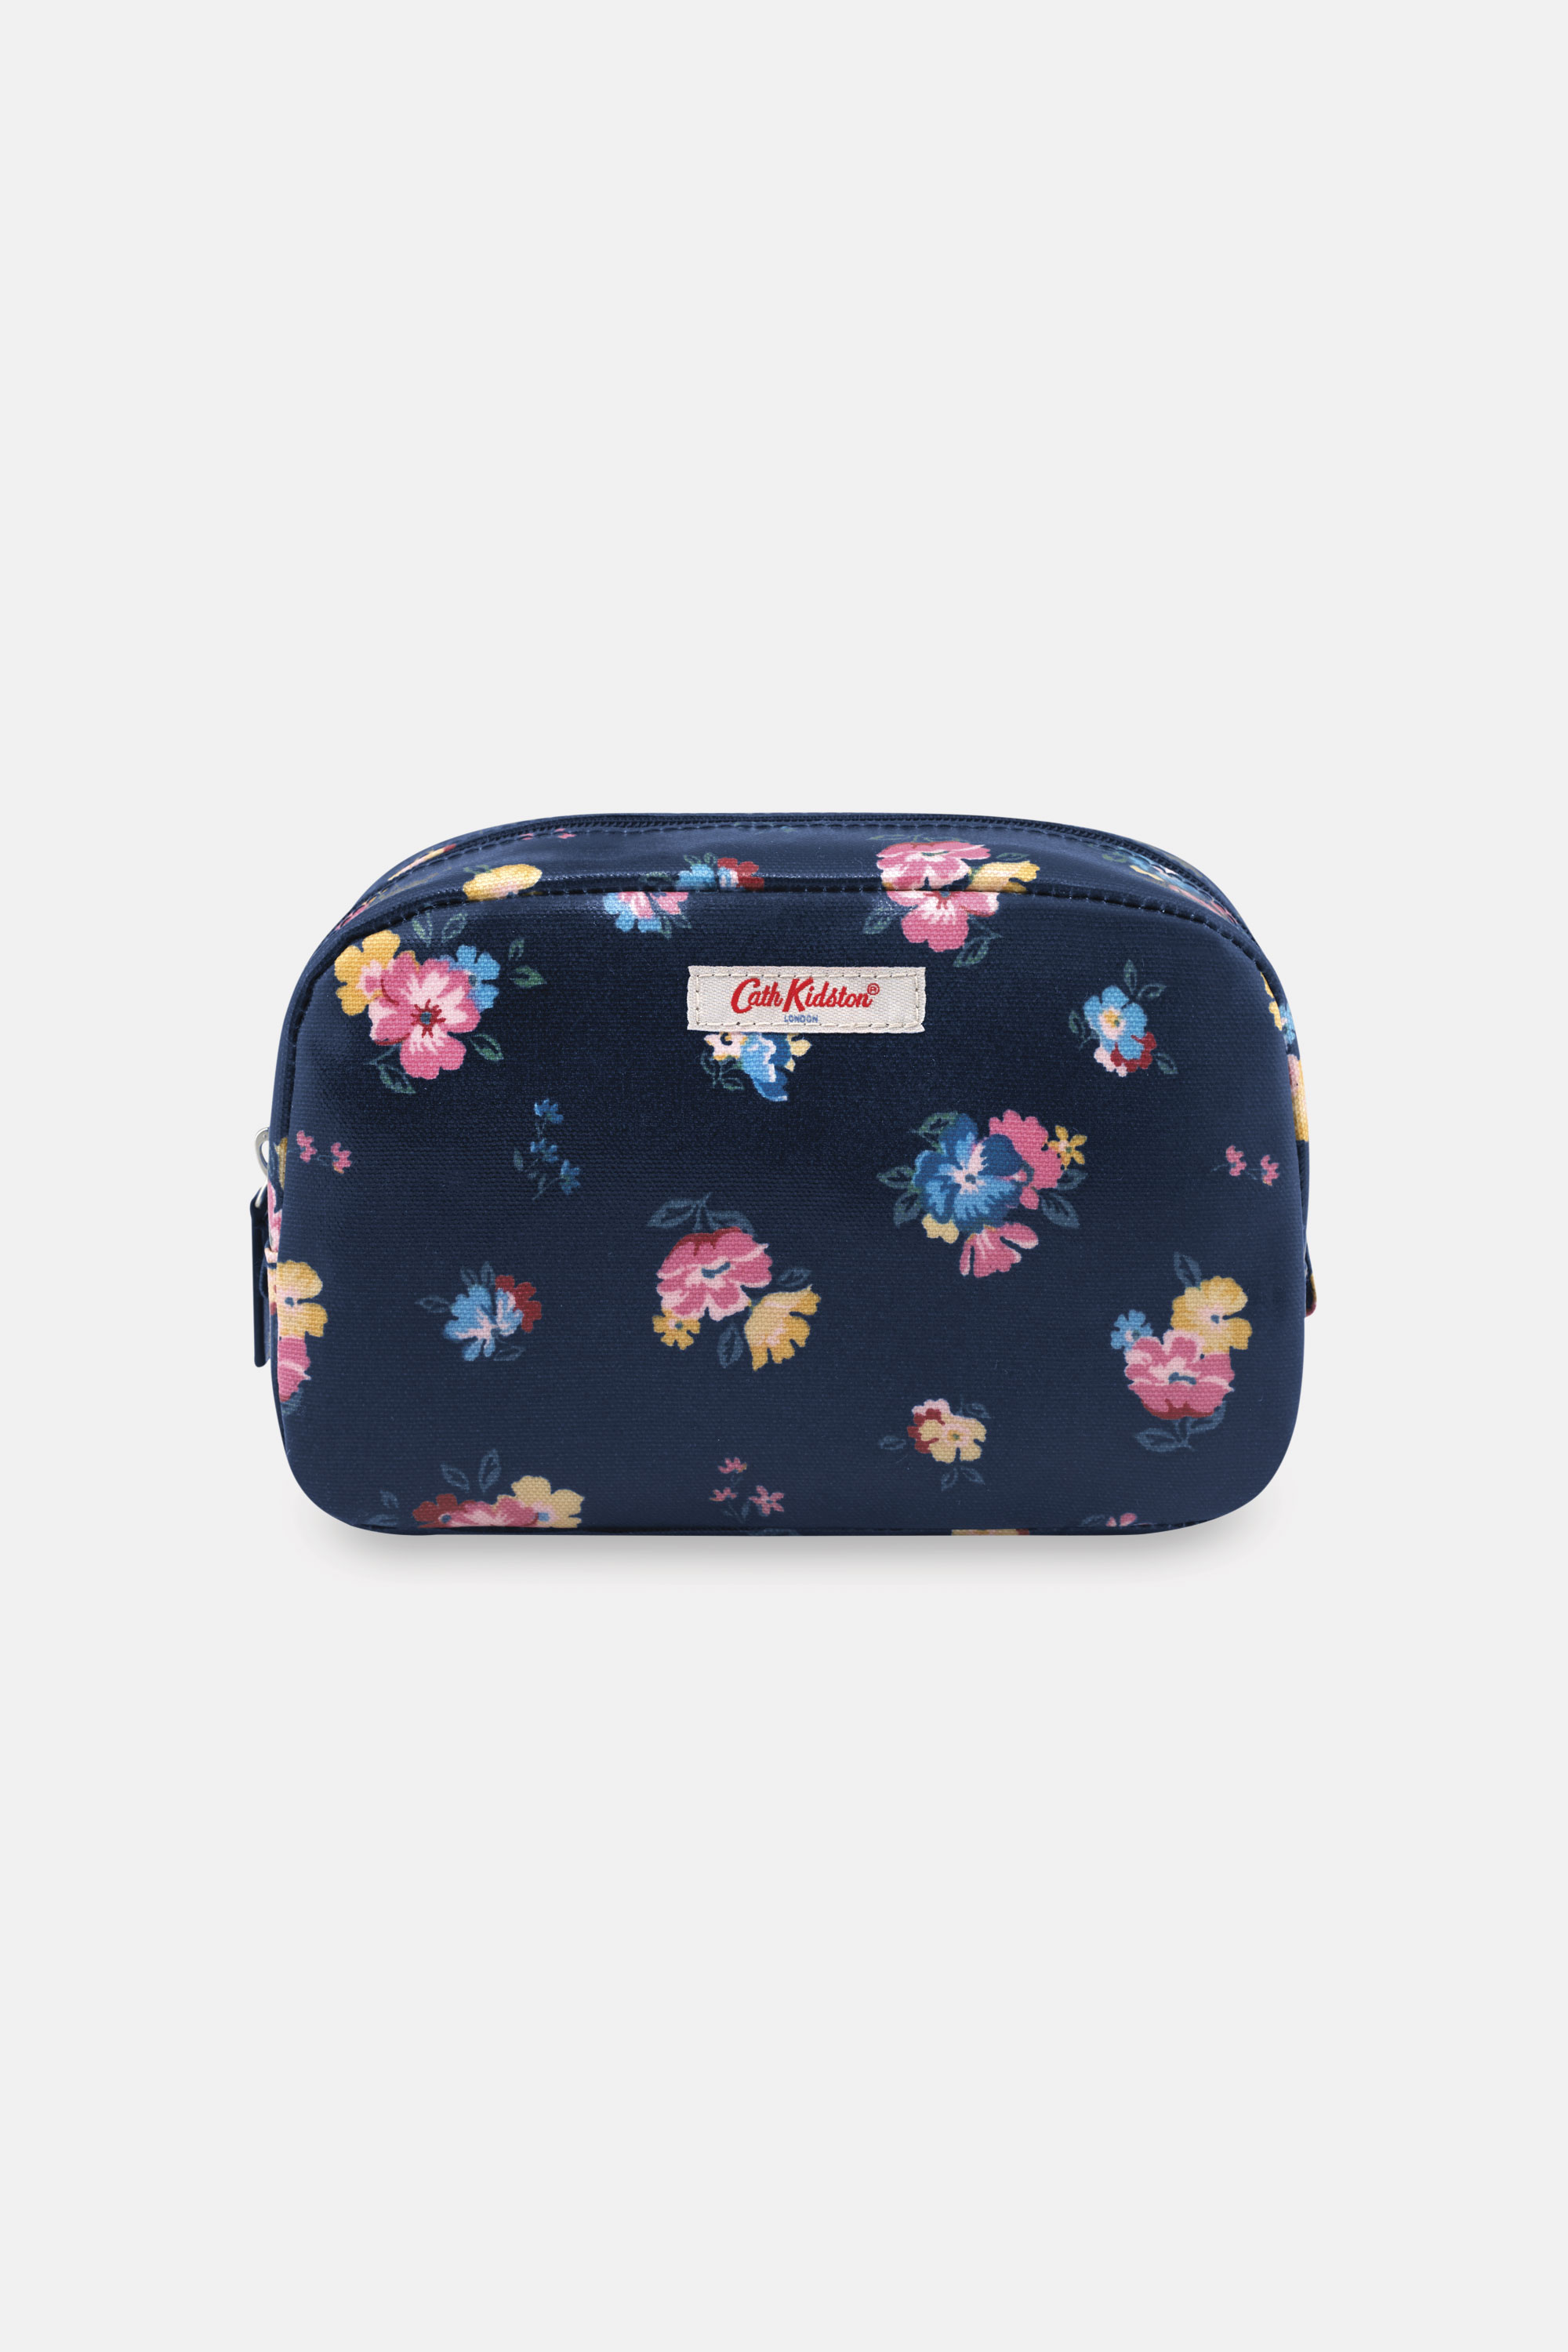 Cath Kidston Park Meadow Bunch Classic Cosmetic Bag in Navy